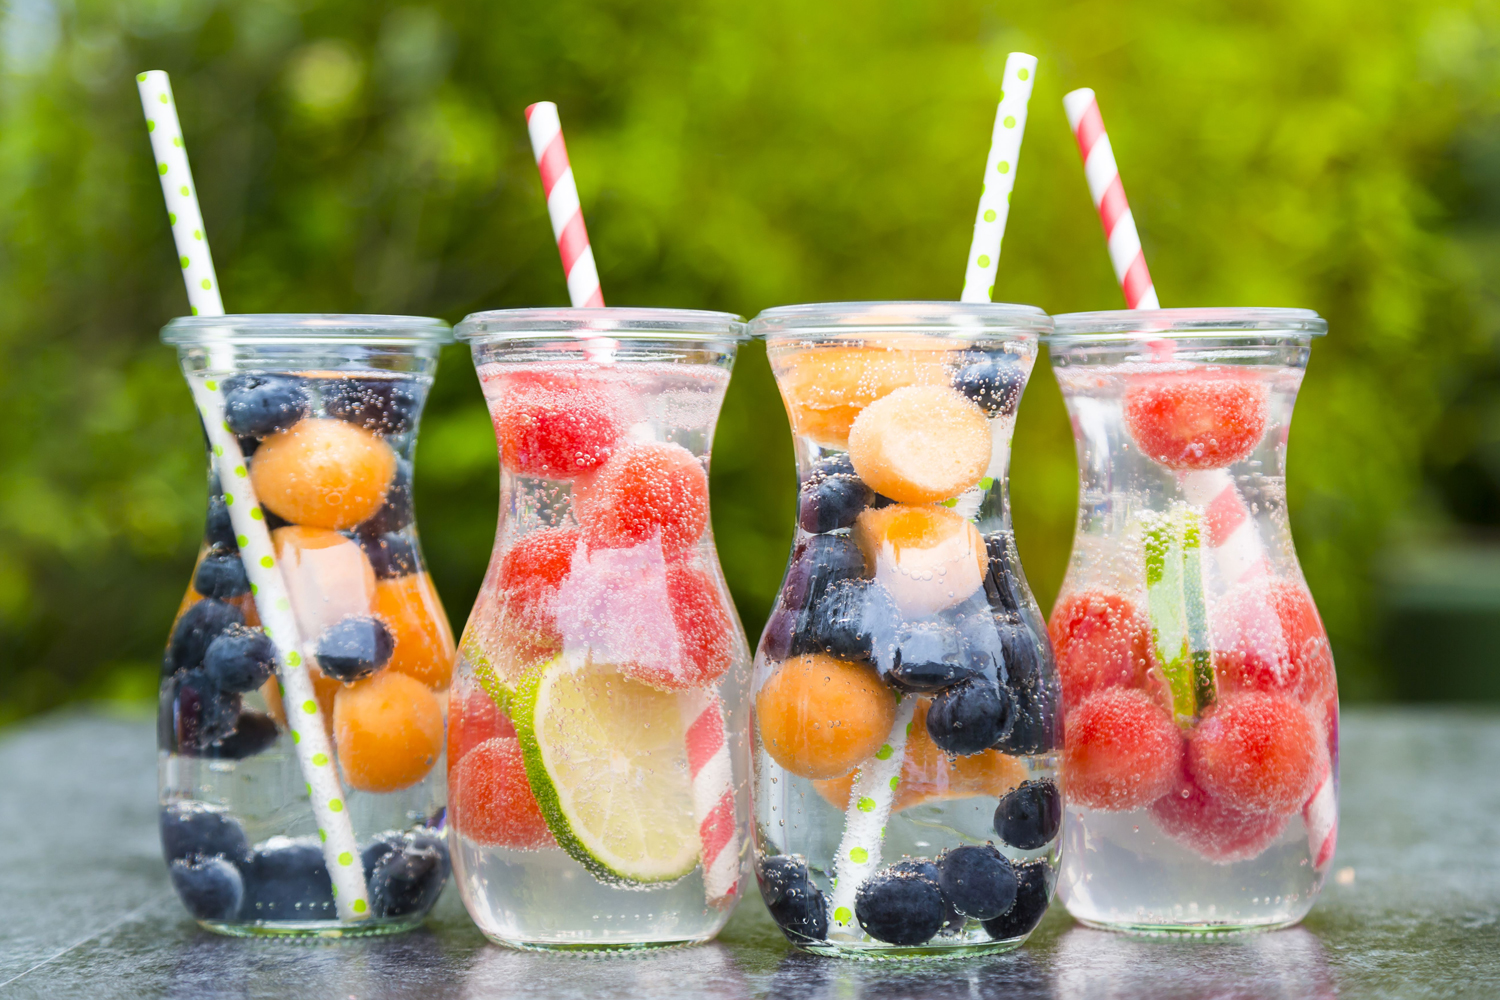 This drink is probably why you're hungry all the time